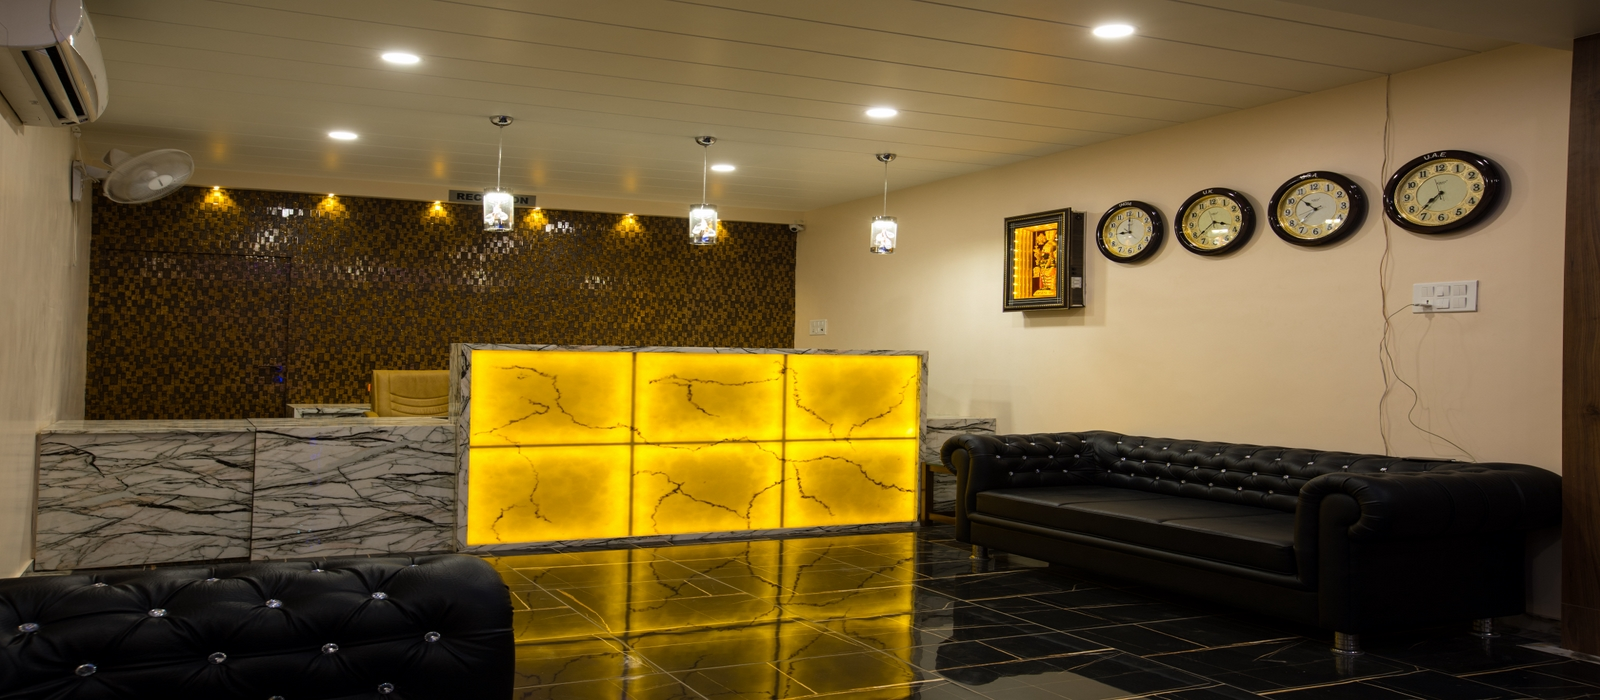 The Hotel Balaji Palace welcomes you, to experience hospitality at its finest